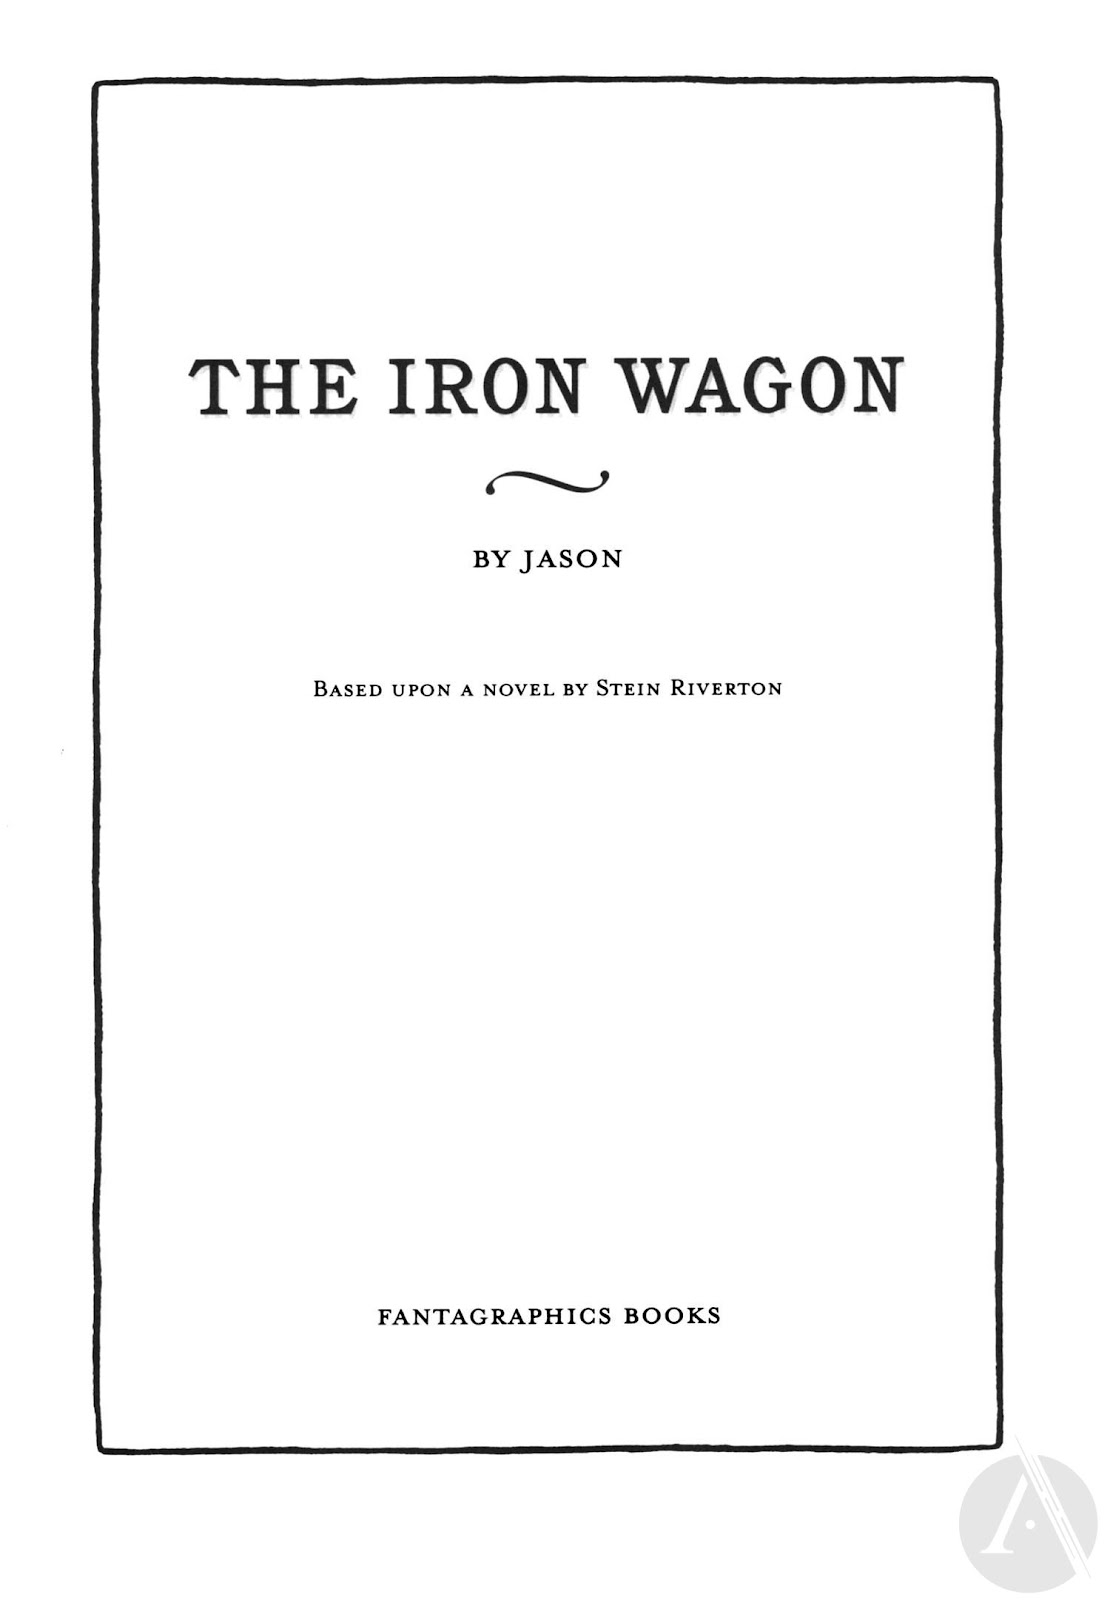 Read online The Iron Wagon comic -  Issue # TPB - 3